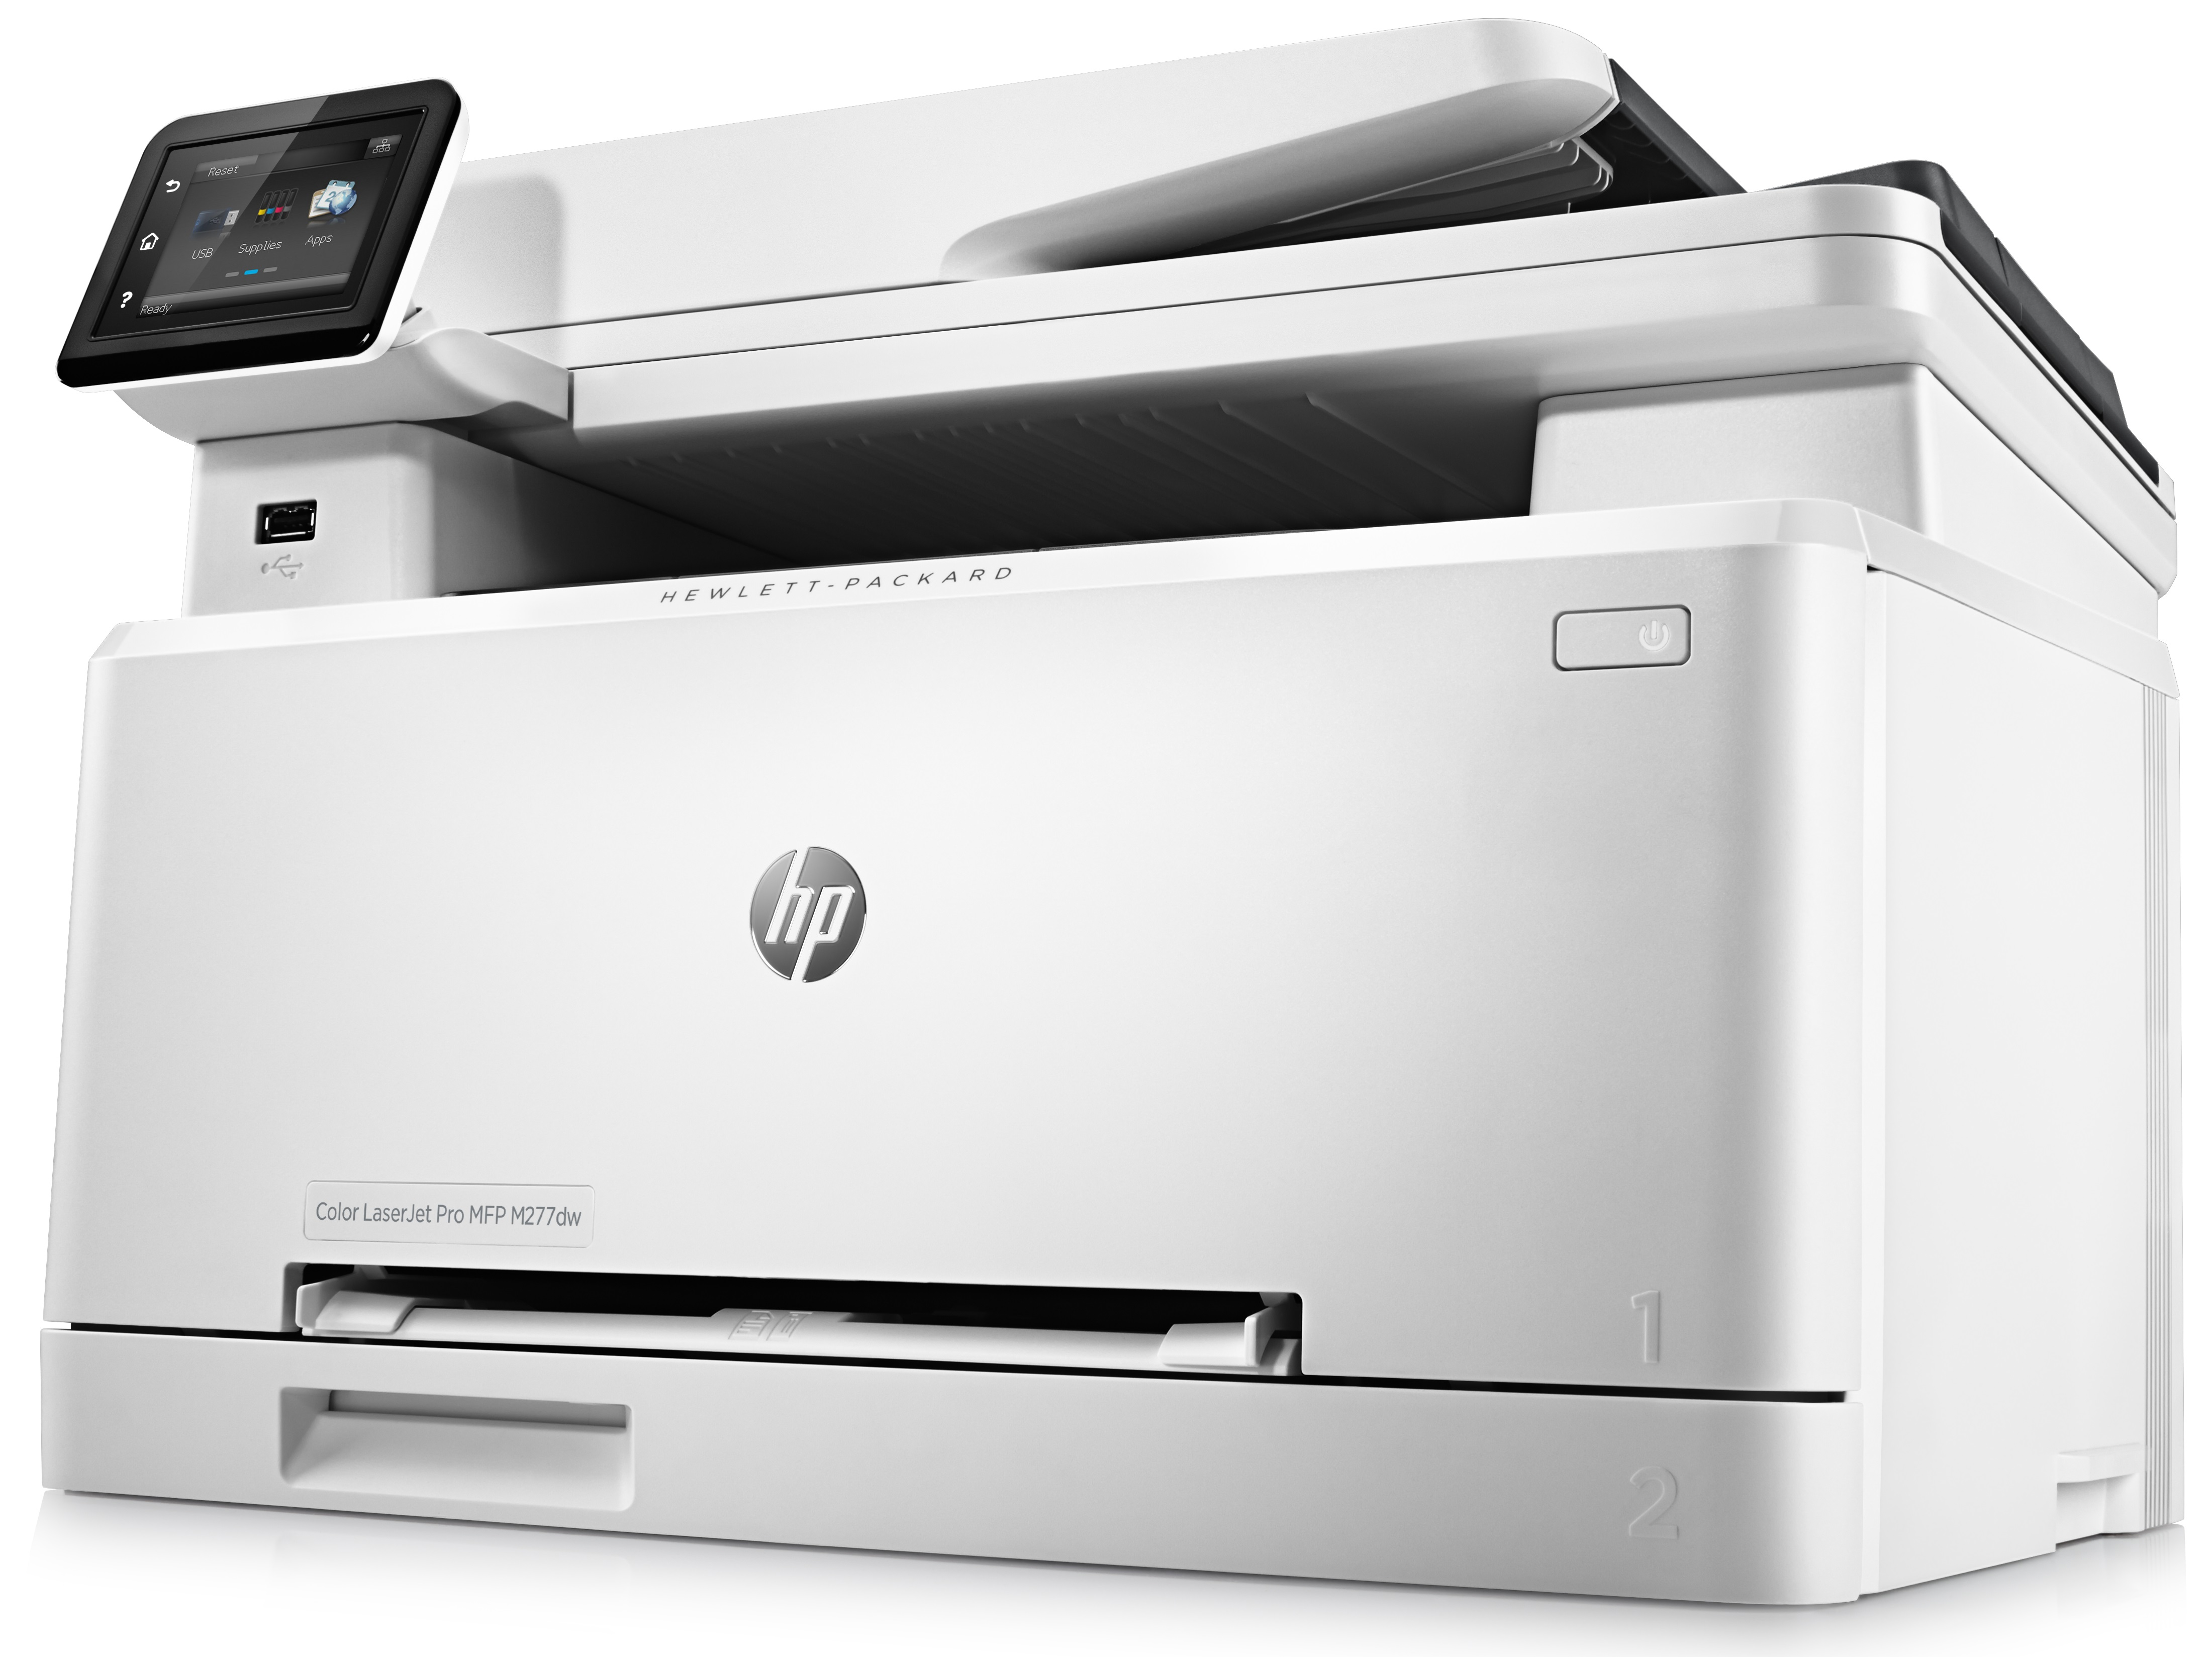 Color laserjet multifunction printer   hp color laser jet pro mfp277dw printer